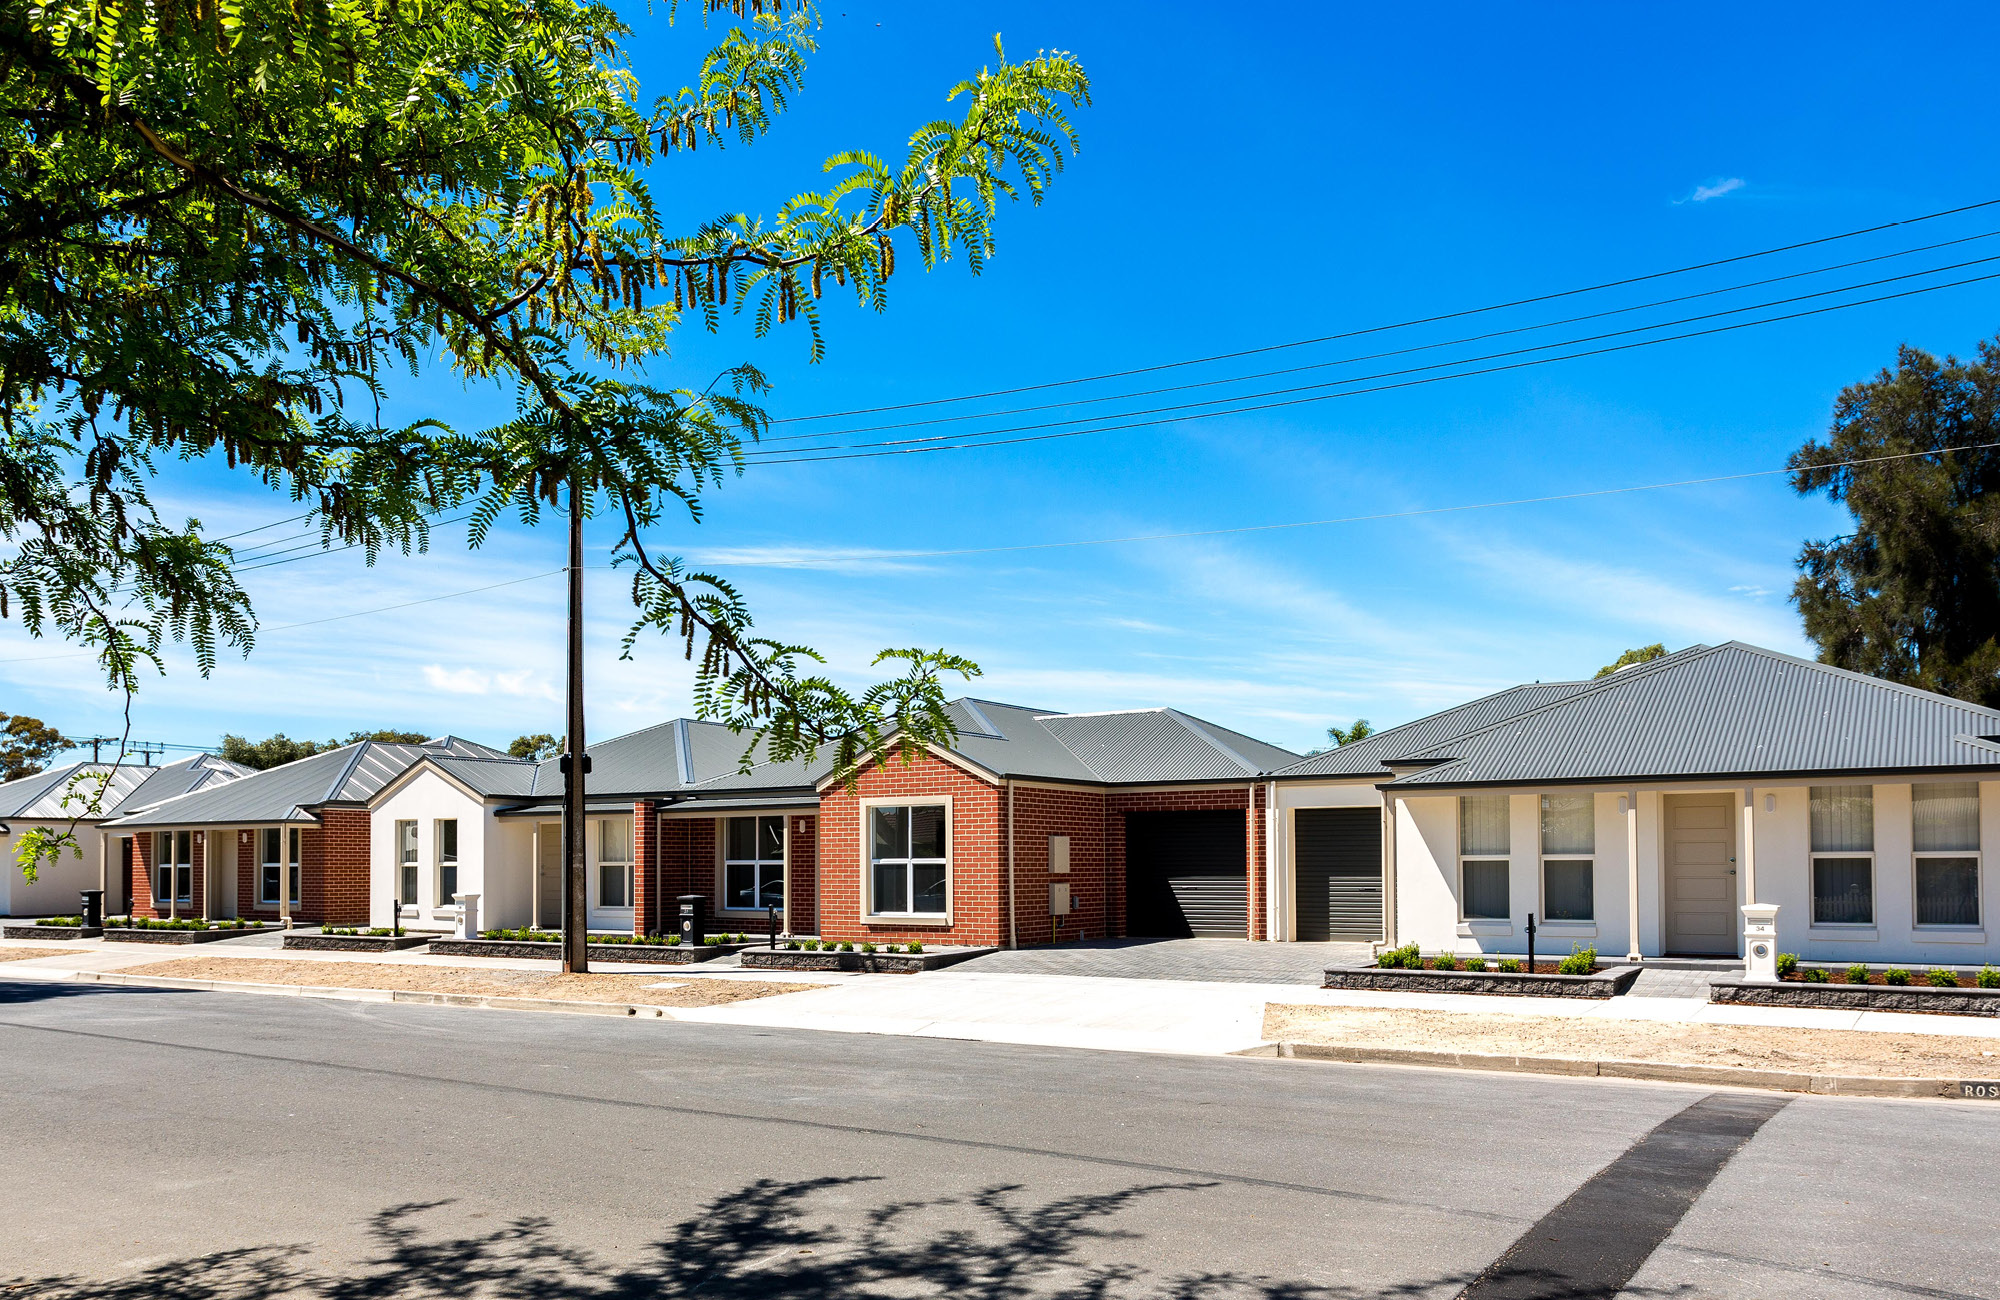 Fletcher Road Property Development Normus Urban Projects